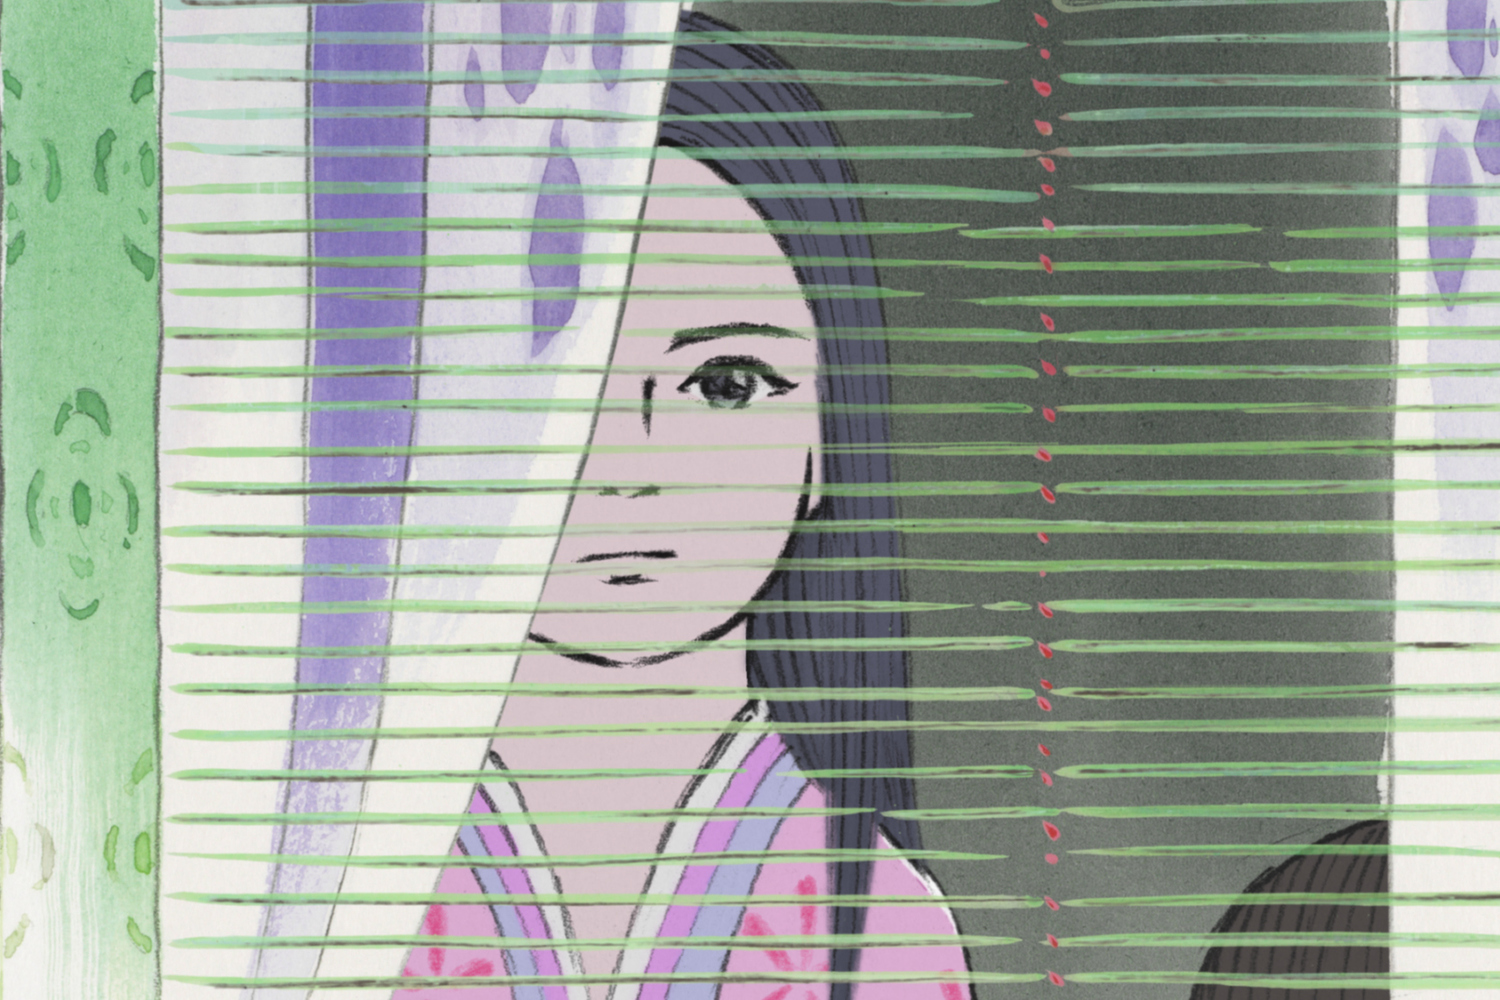 The Tale of Princess Kaguya. 2014. Japan. Directed by Isao Takahata. Courtesy of GKids